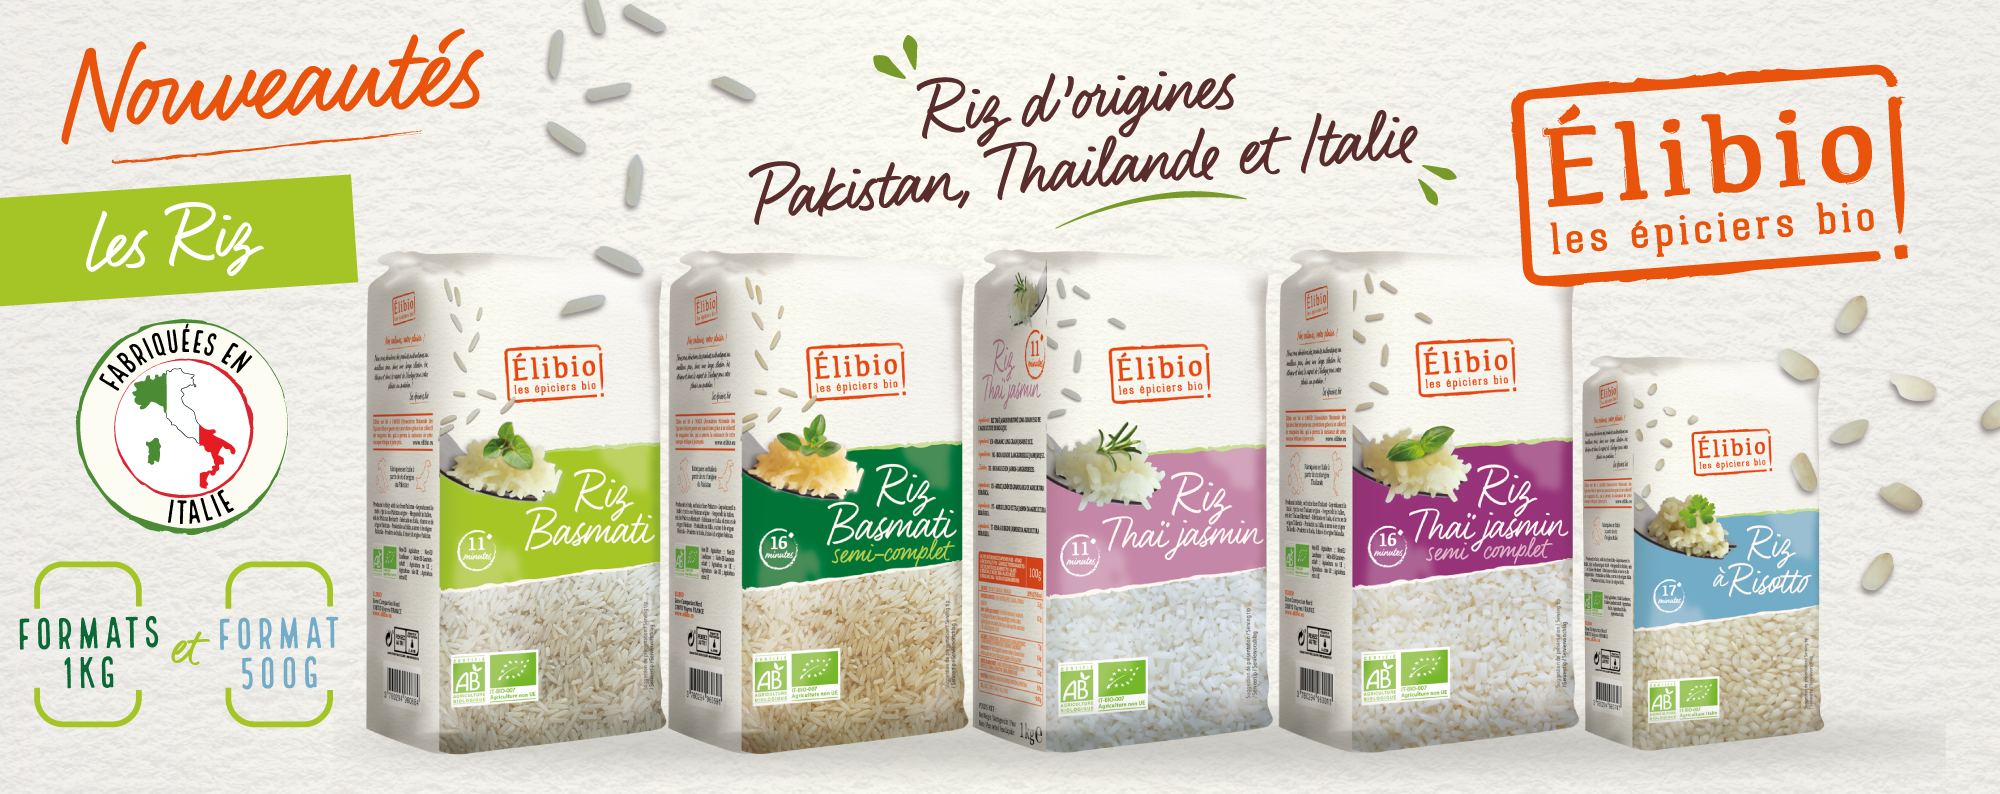 ELIBIO---SLIDES-NEW-RIZ